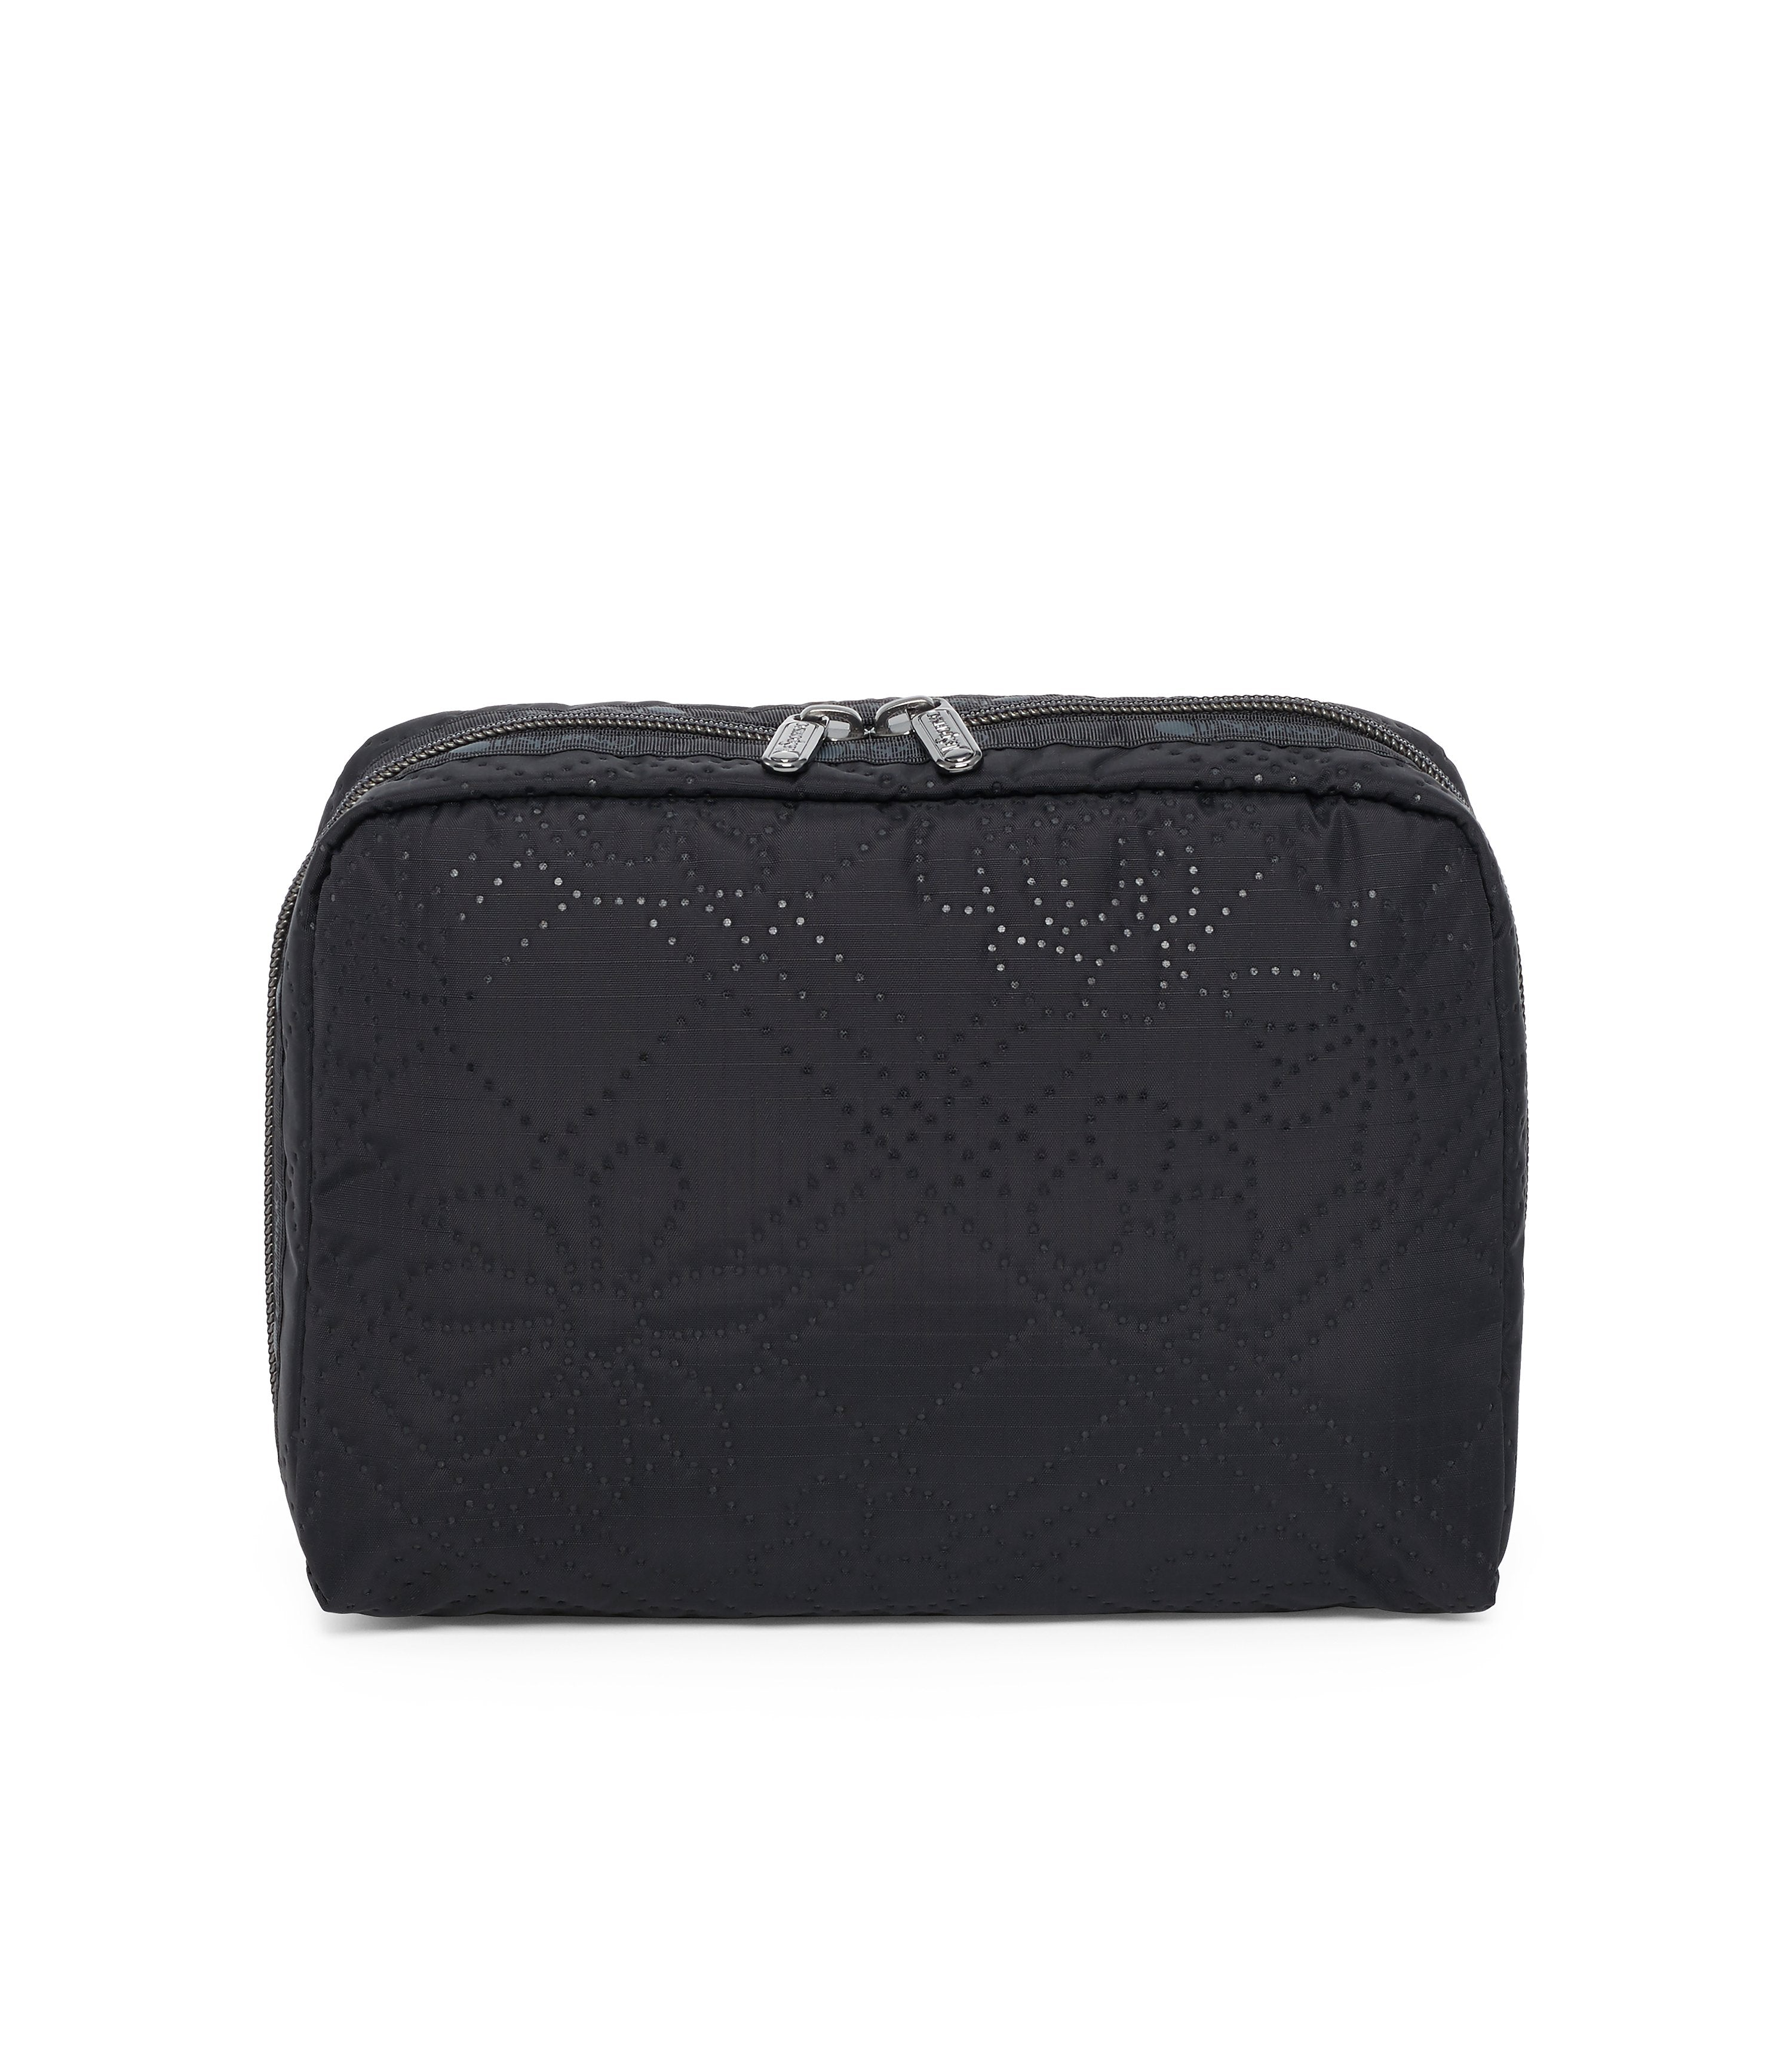 XL Rectangular Cosmetic, Accessories and Cosmetic Bag, LeSportsac, Tolietry Bag, Fleur De Check Black Debossed